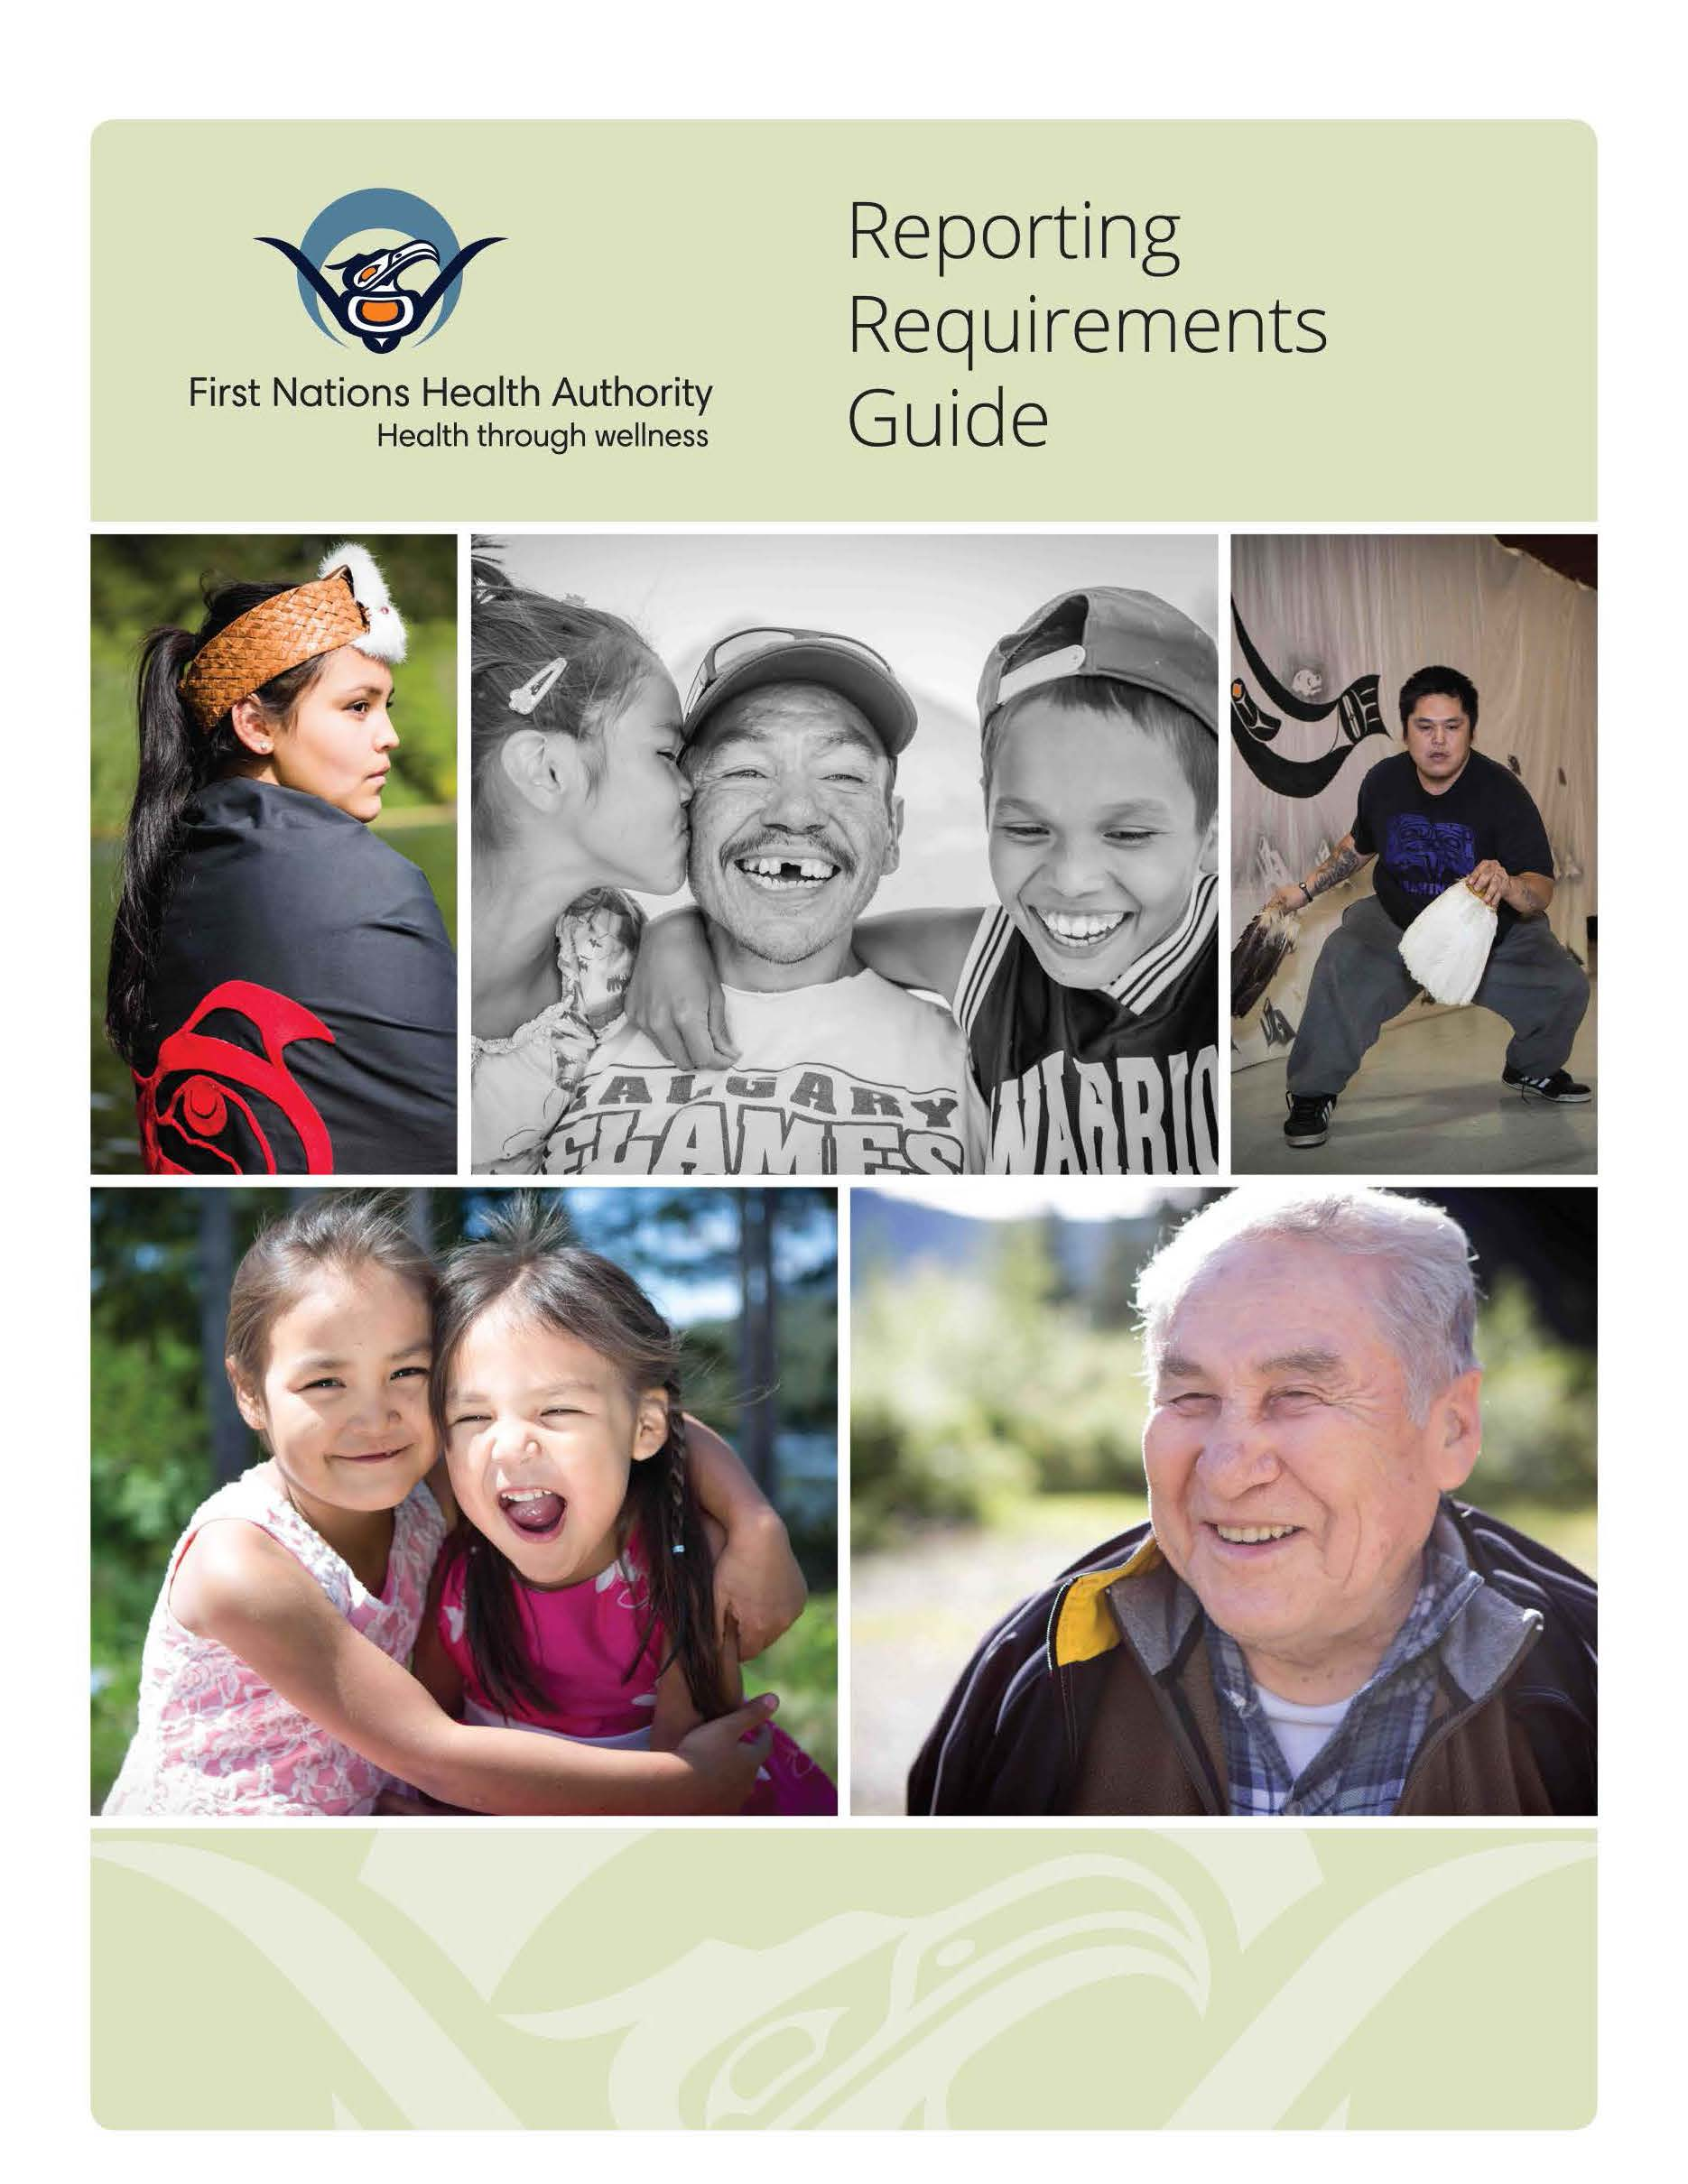 FNHA-Reporting-Requirements-Guide.jpg